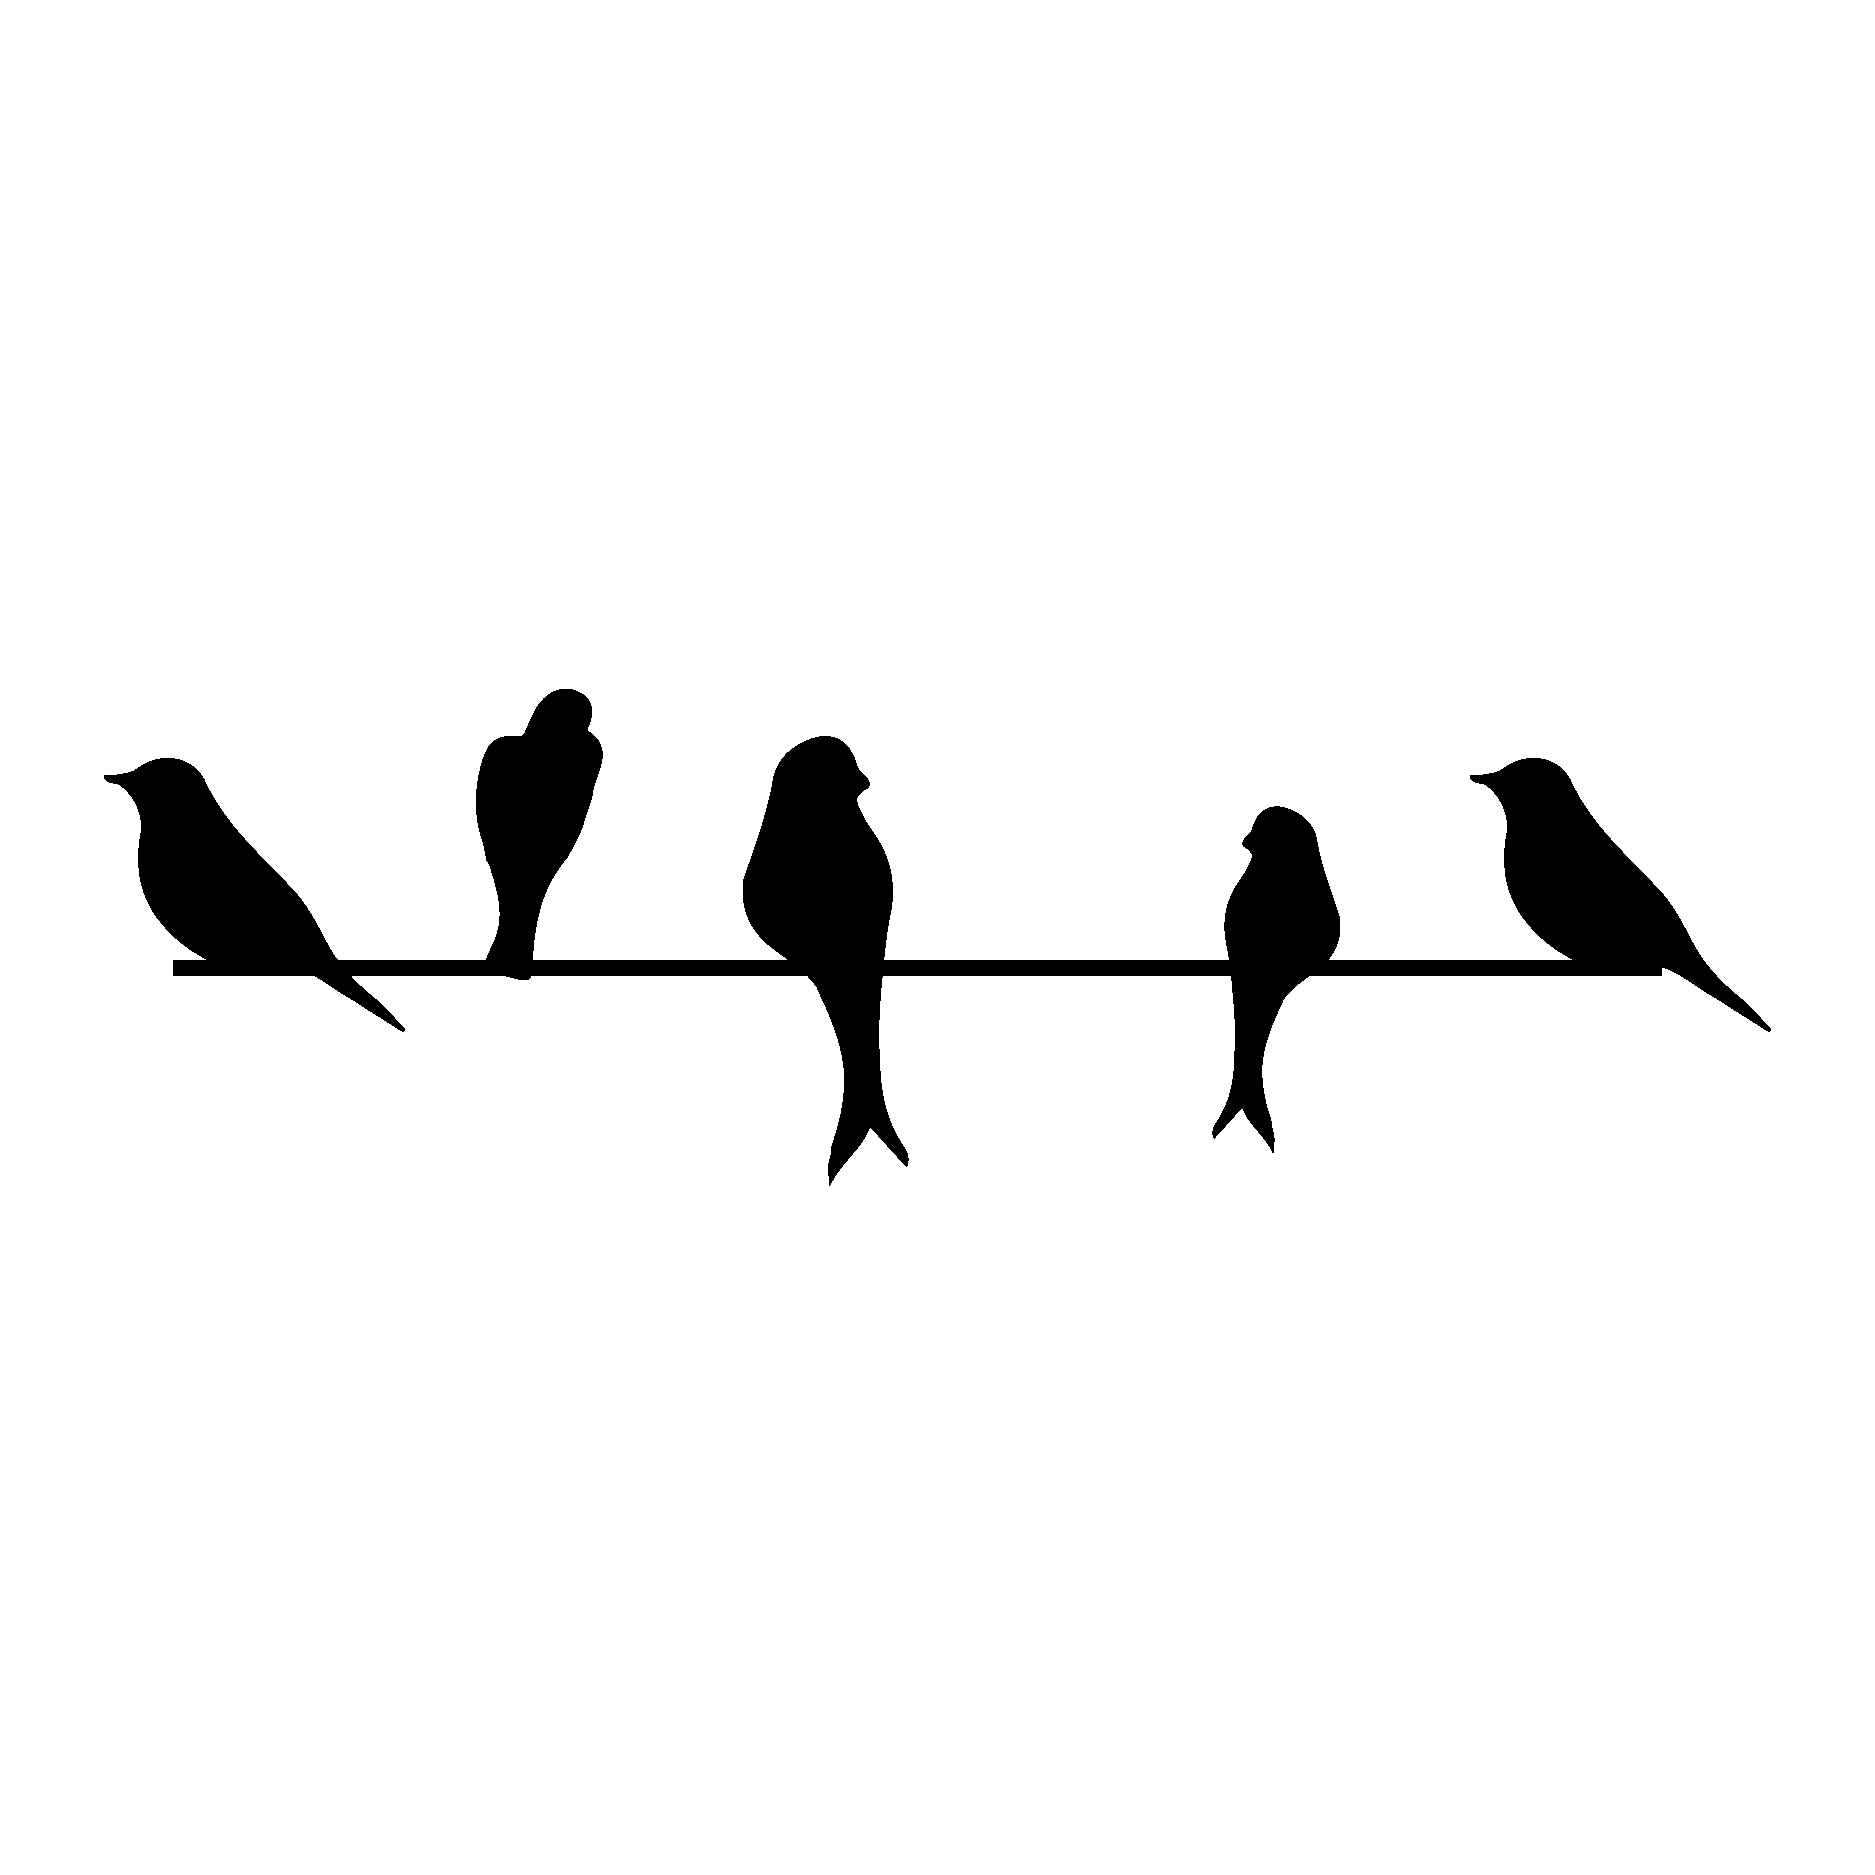 birds on a wire wall quotes u2122 wall art decal